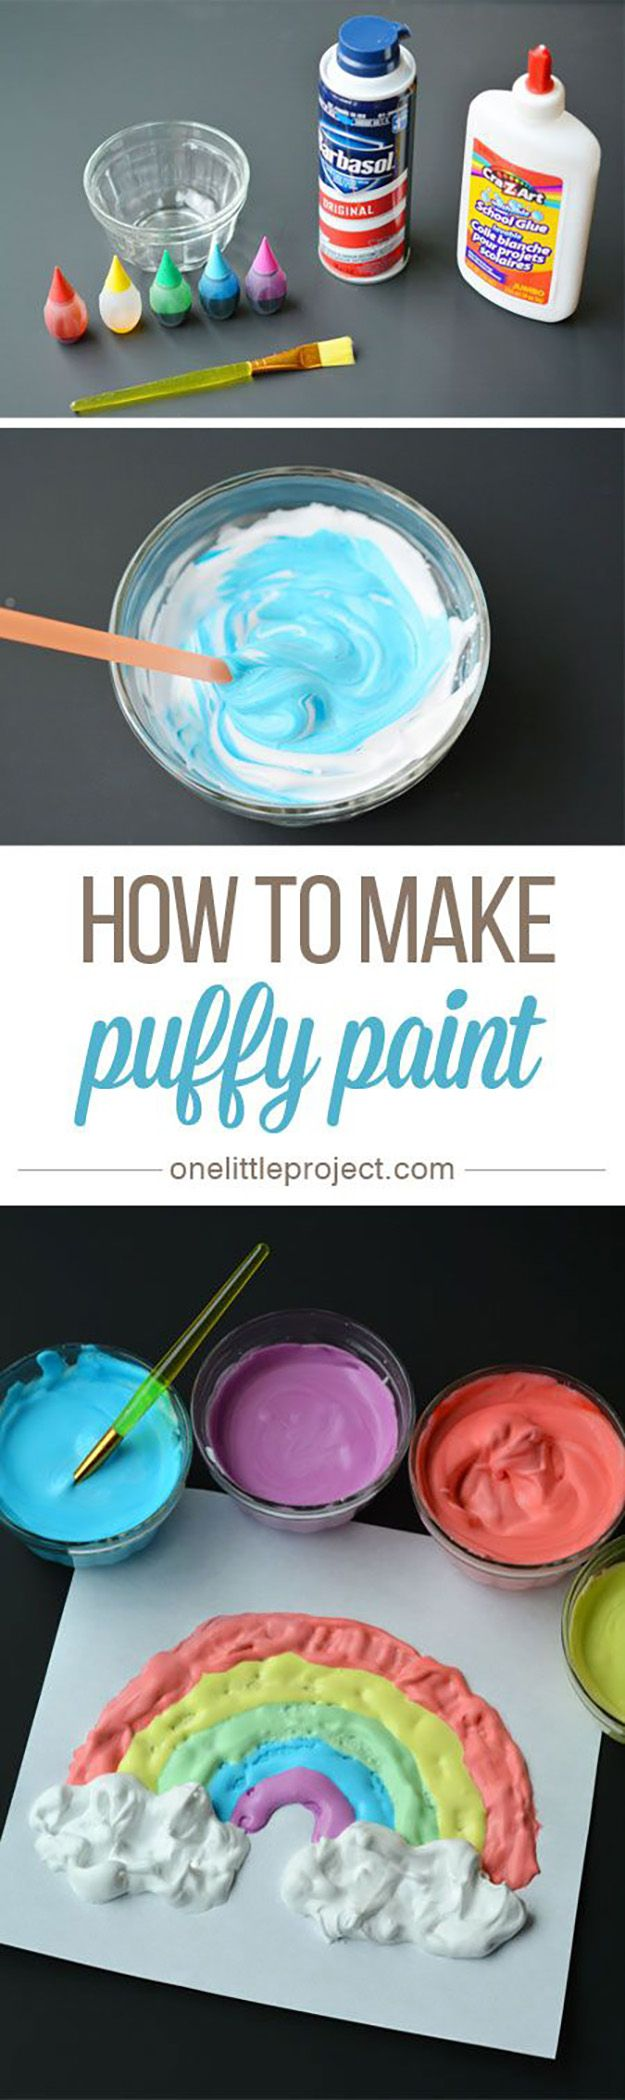 Simple Crafts for Kids to Make | DIY Puffy Paint Tutorial | Easy DIY Craft Ideas for Kids| DIY Smoothie Paint | DIY Projects & Crafts by DIY JOY at http://diyjoy.stfi.re/pinterest-crafts-for-kids-diy-paint